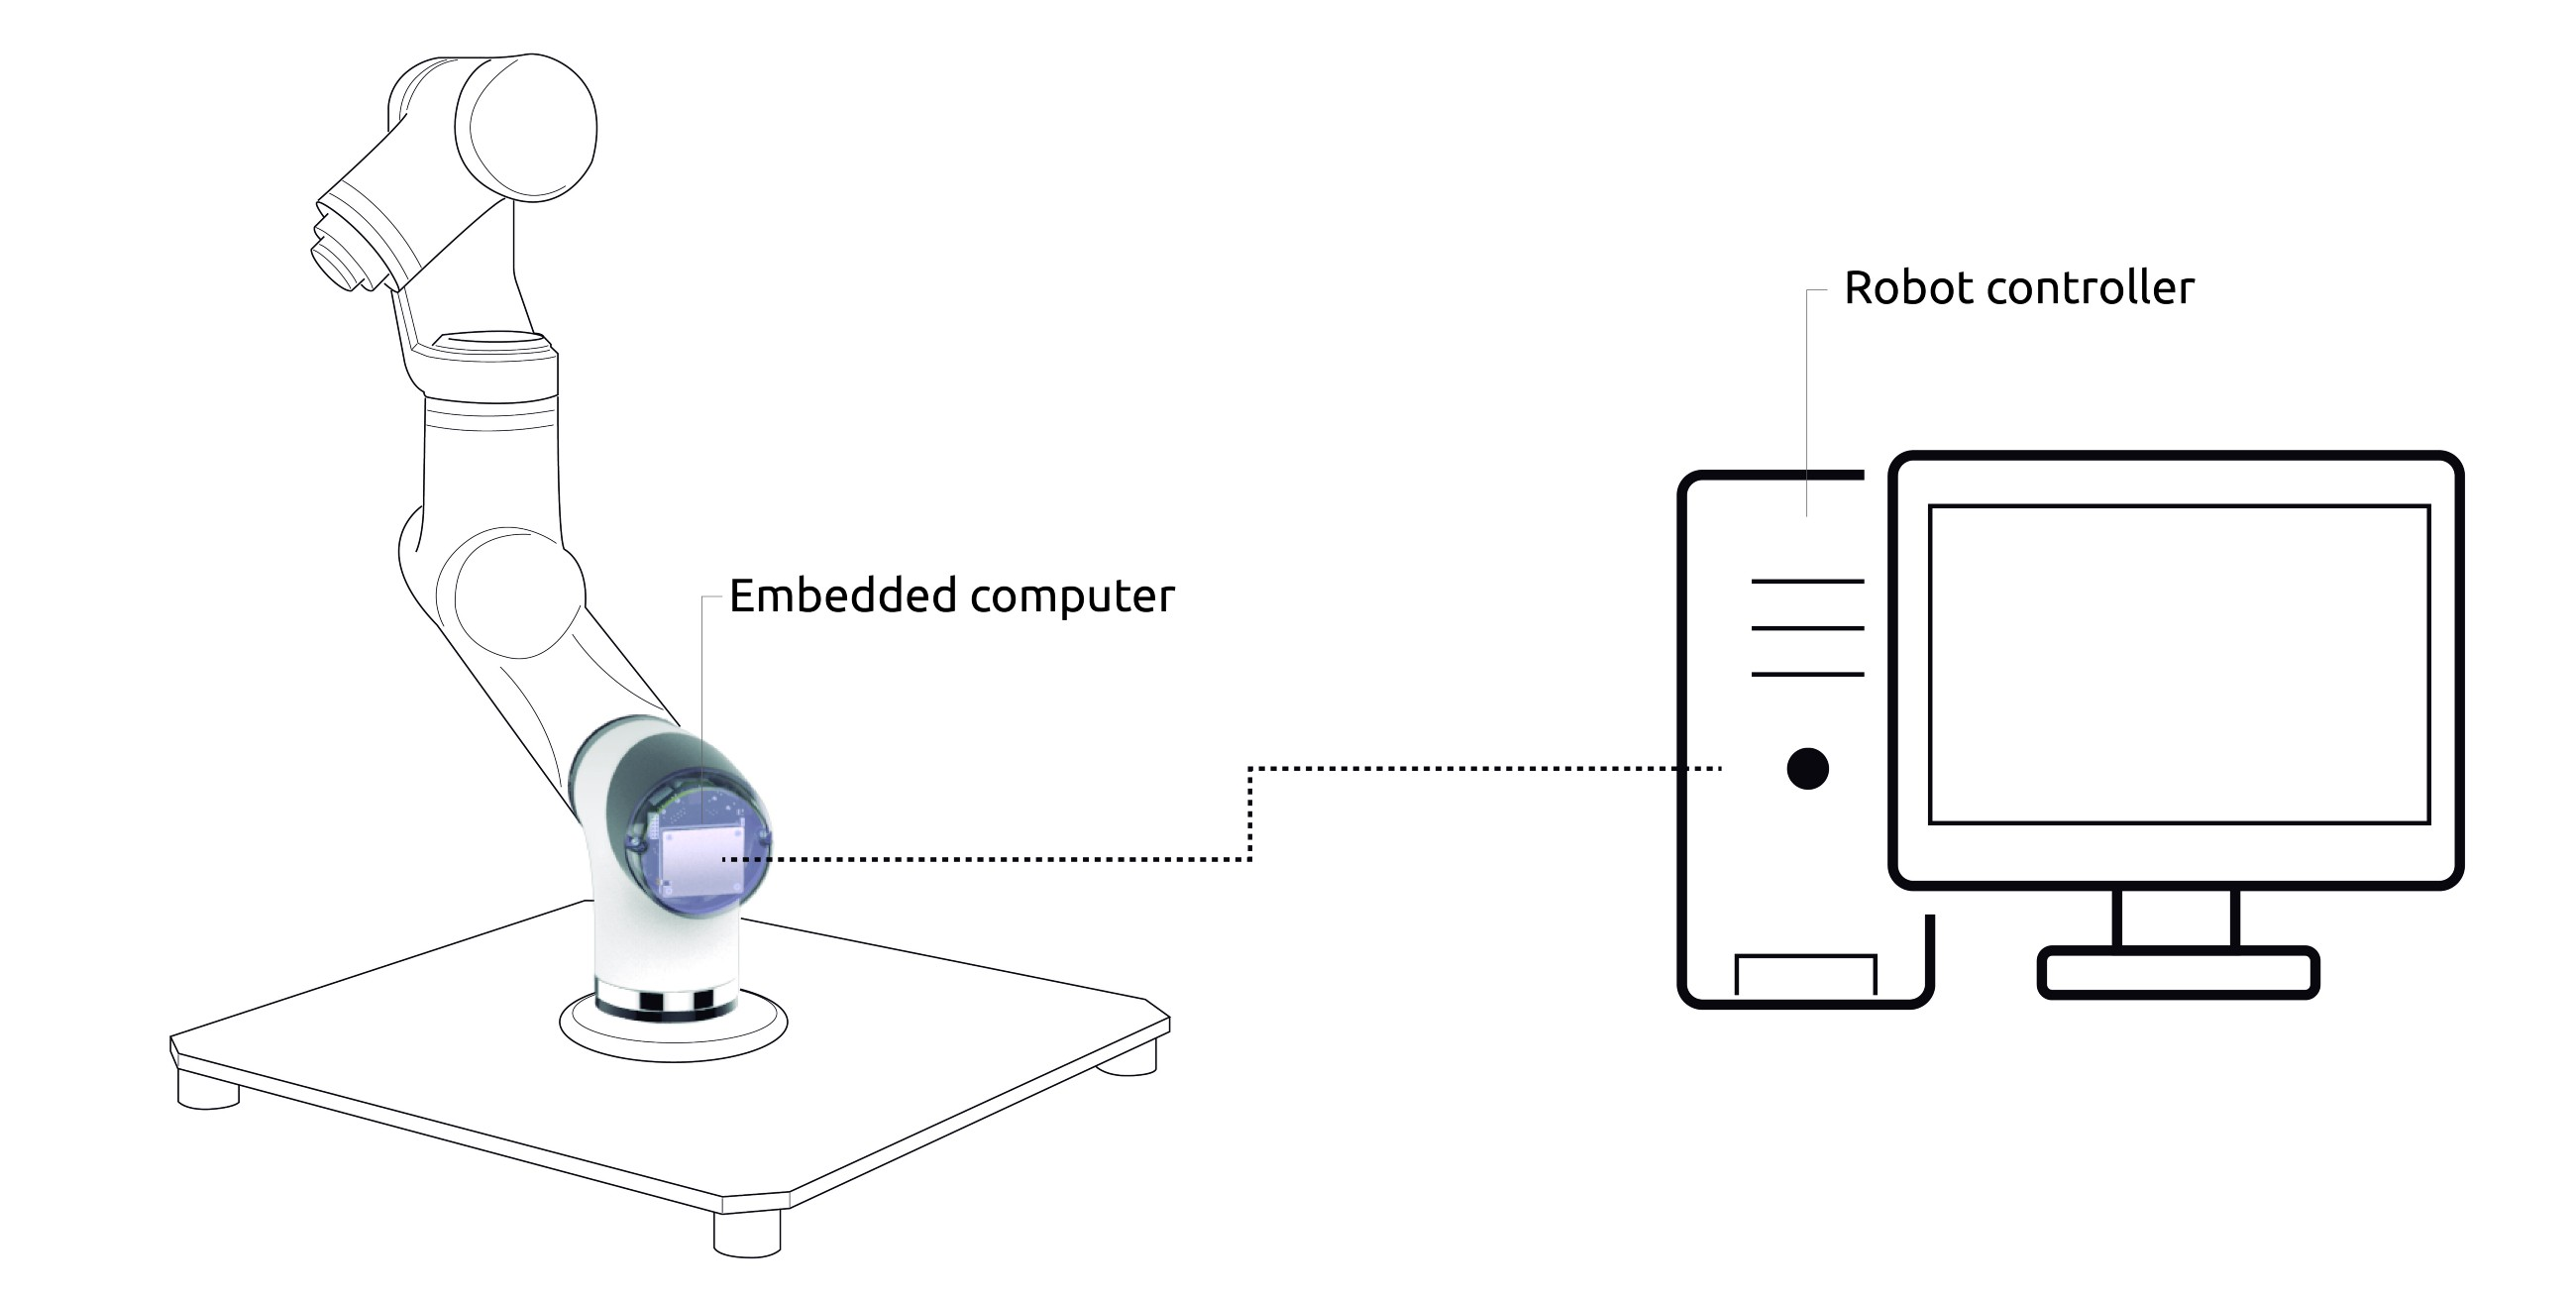 /towards-a-distributed-and-real-time-framework-for-robots-469ba77d6c42 feature image